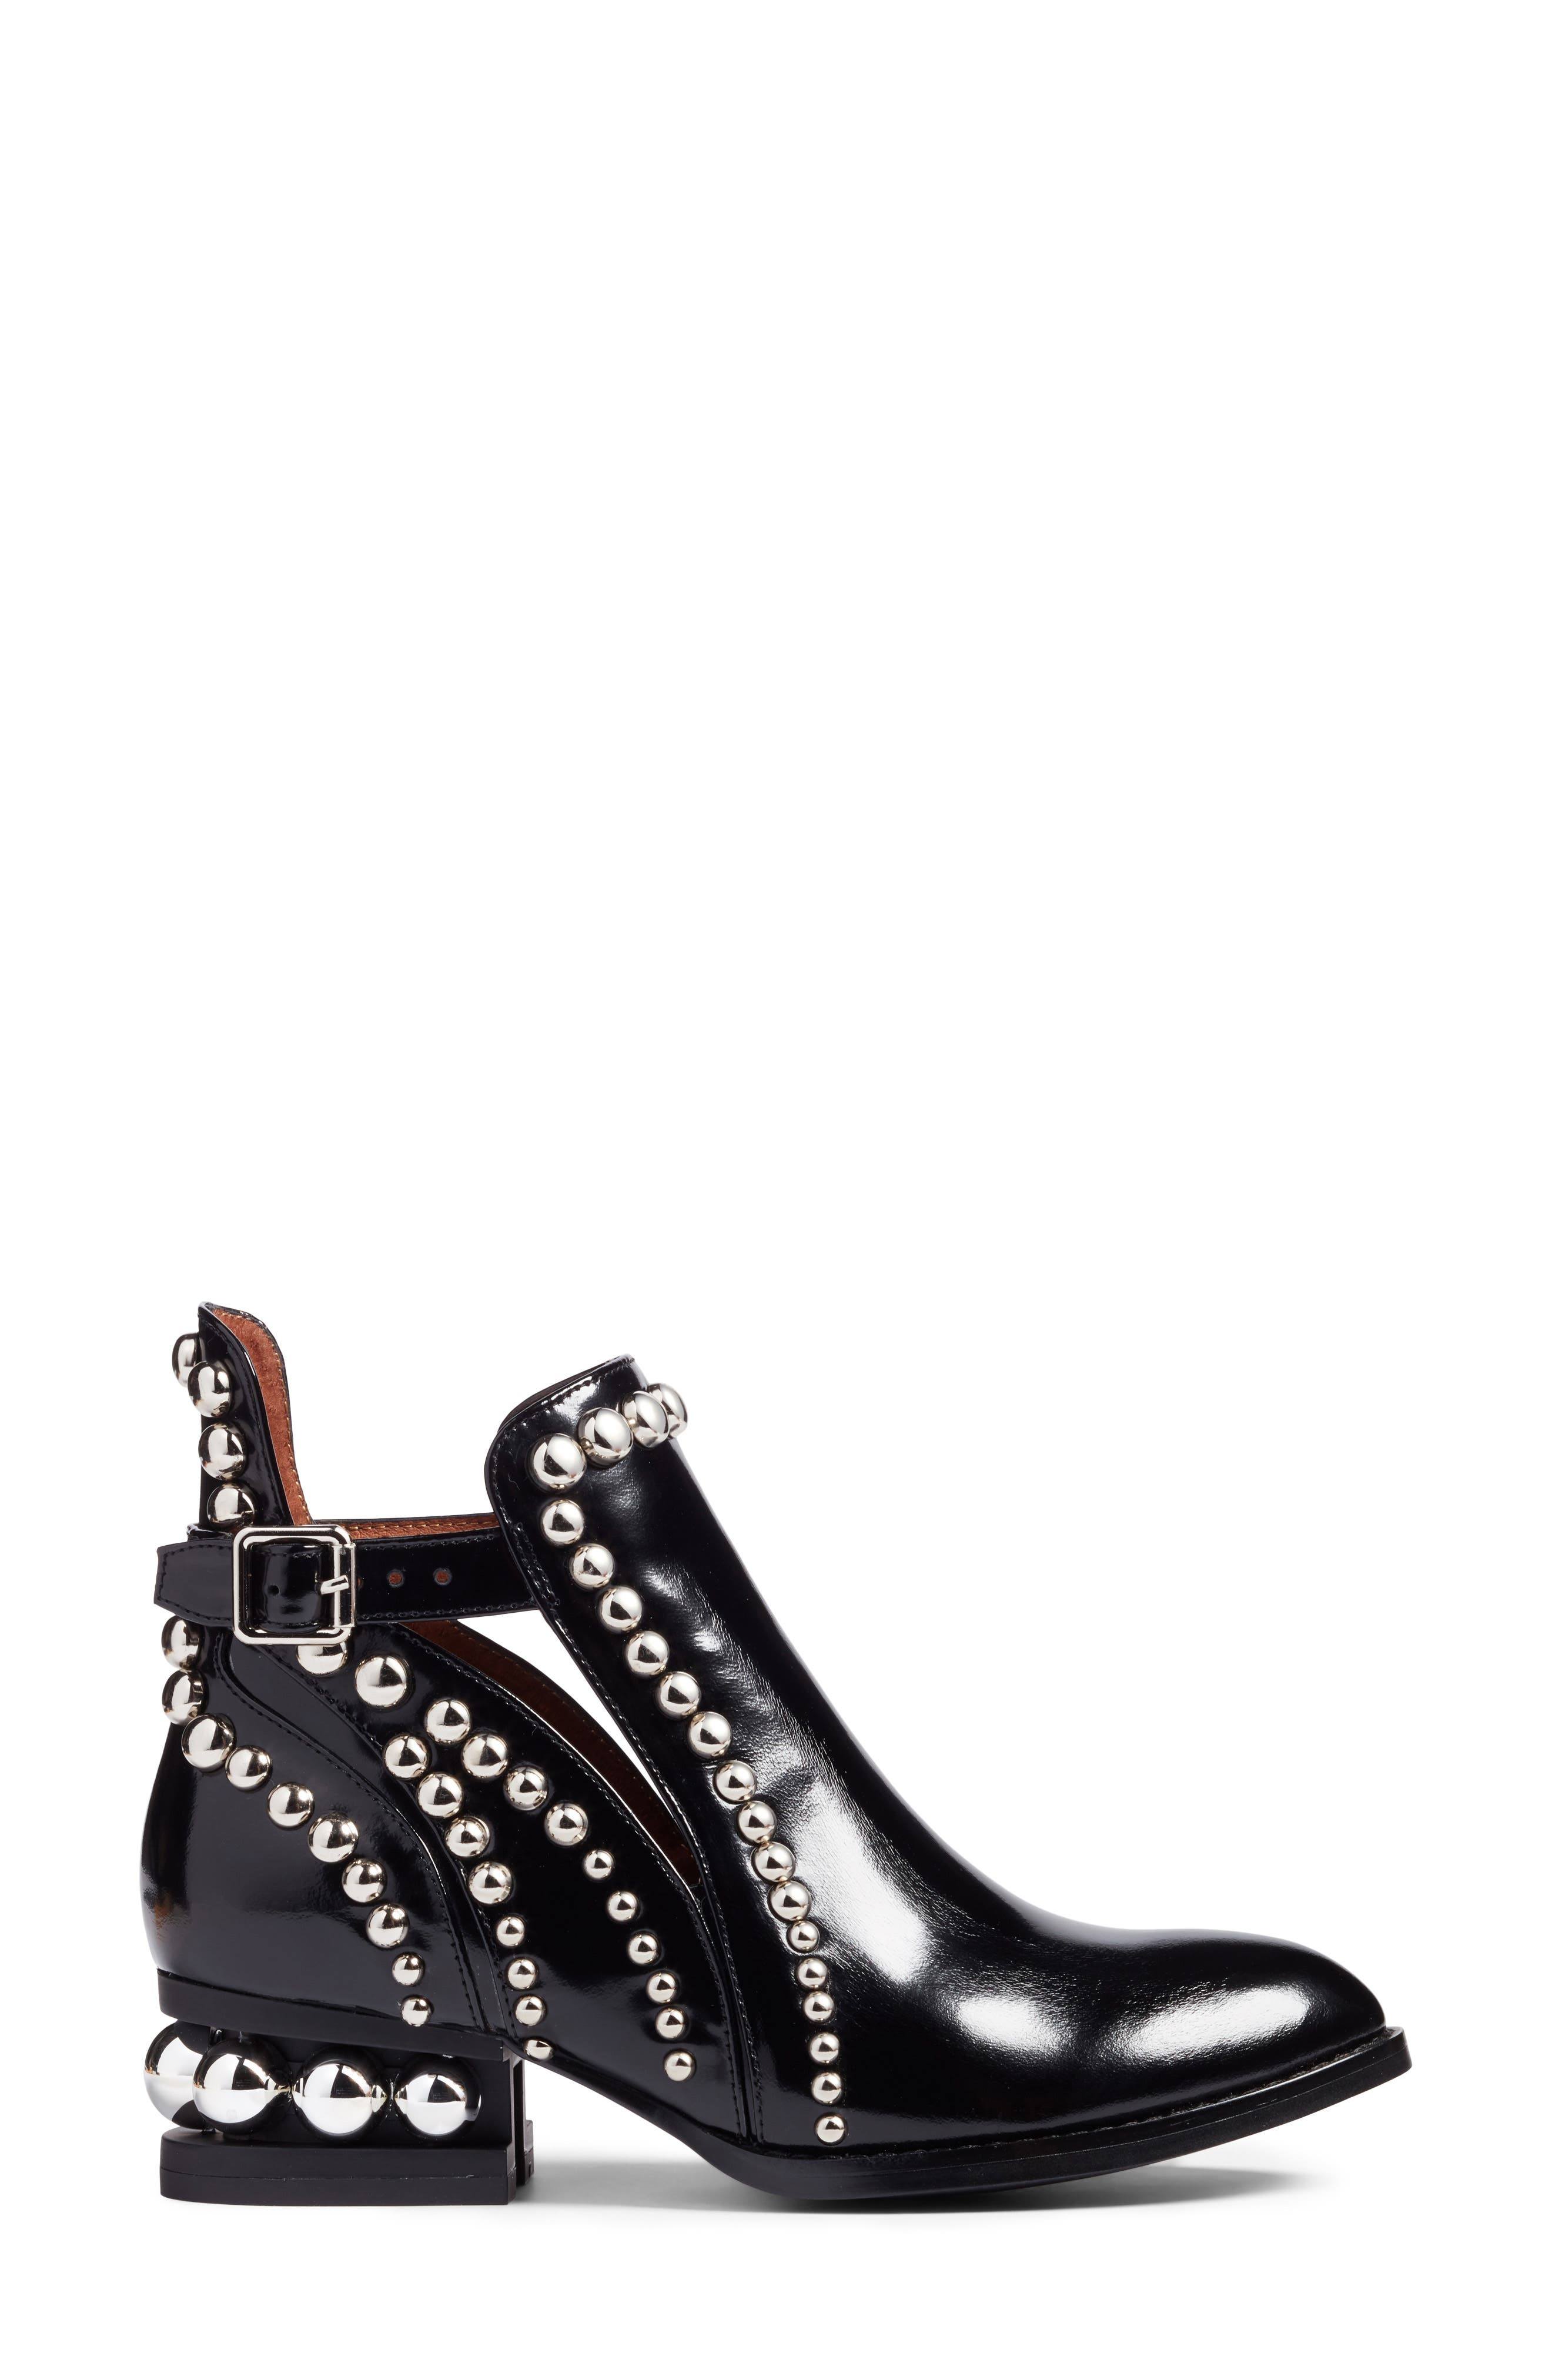 JEFFREY CAMPBELL, Rylance Studded Bootie, Alternate thumbnail 3, color, BLACK BOX SILVER LEATHER